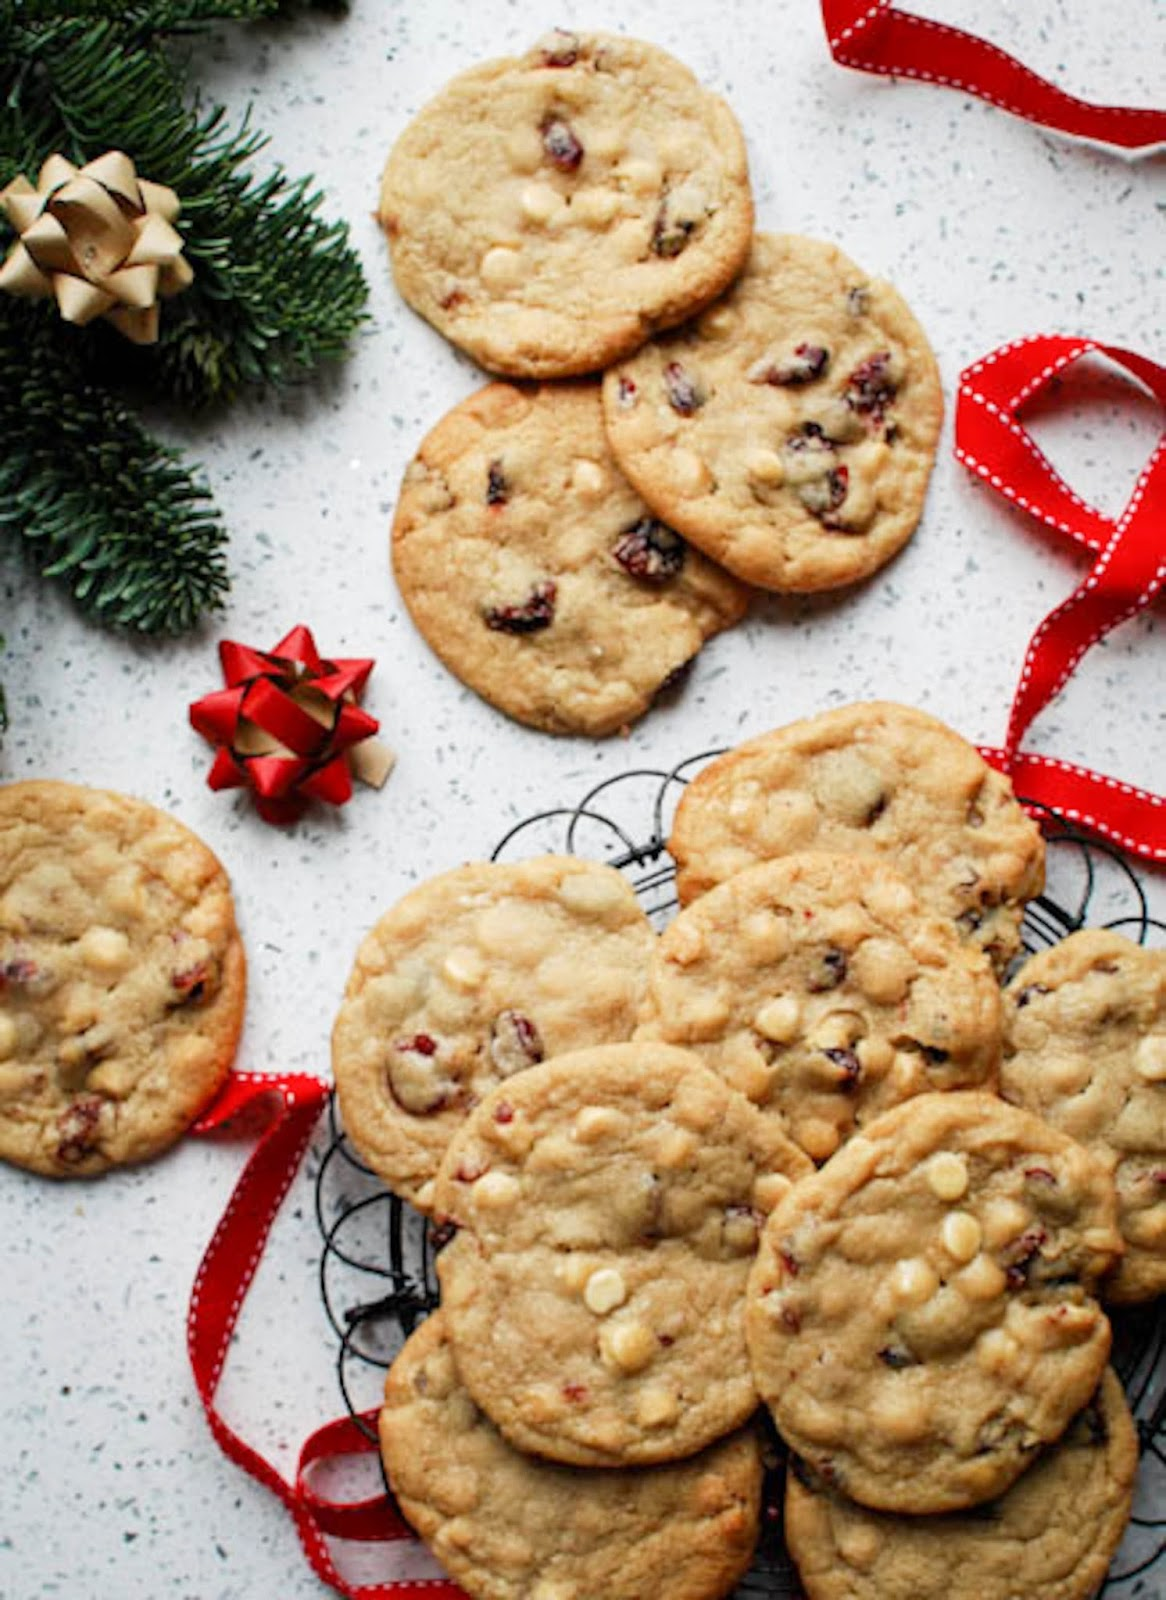 Give Santa a break from mince pies this Christmas and bake up a batch of these cranberry and white chocolate cookies instead.